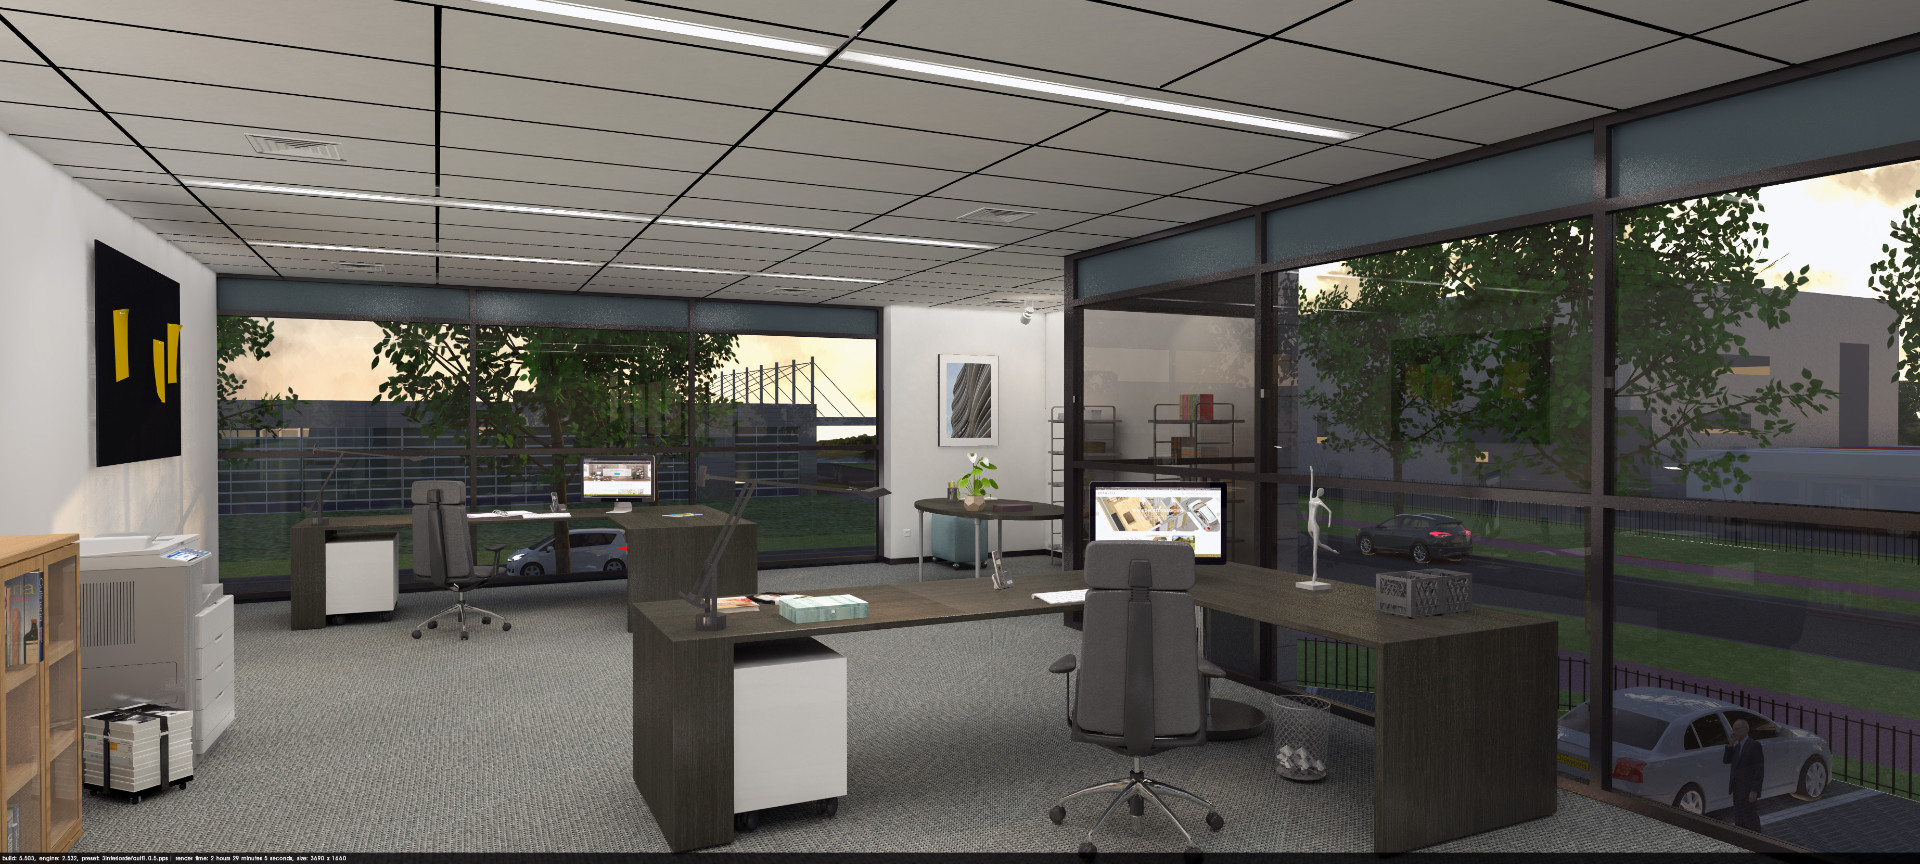 Interieur-office-v7-pp.jpg